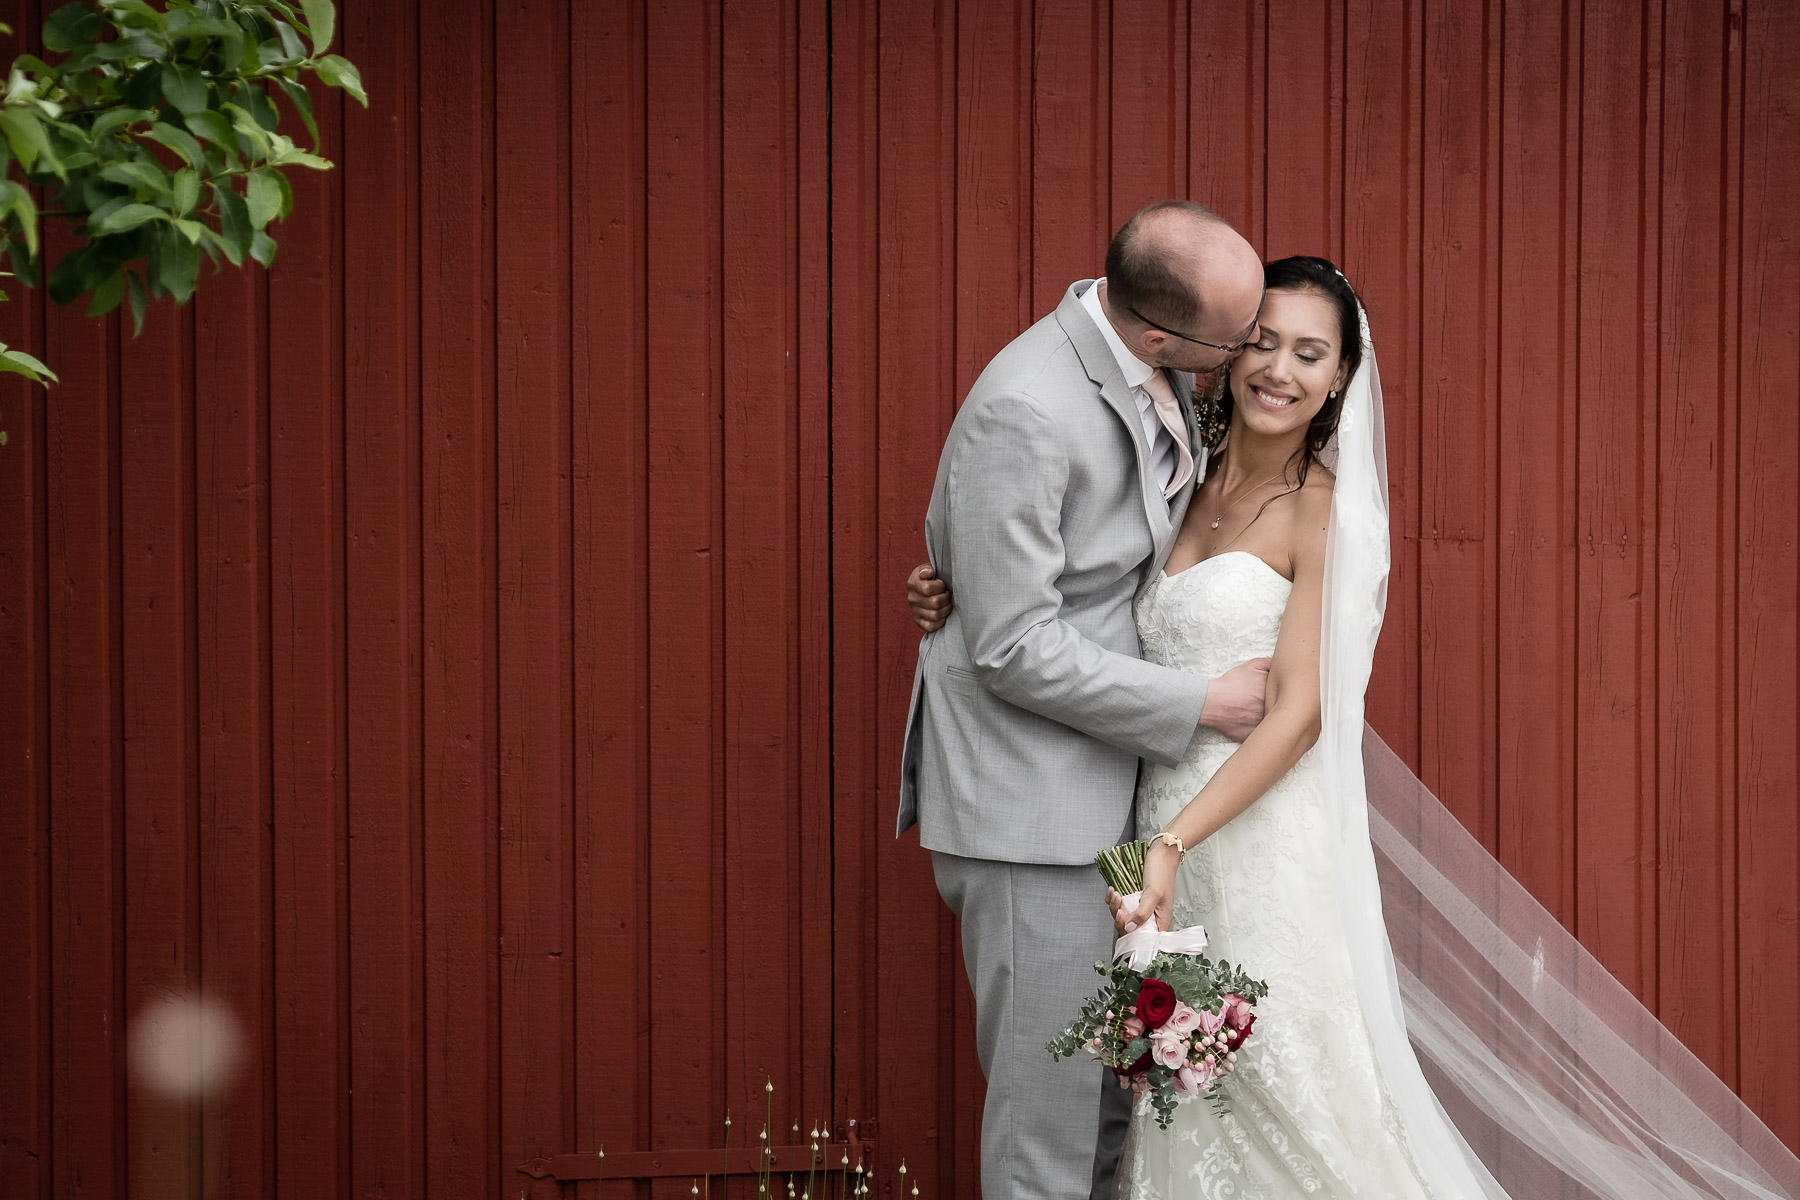 Click to enlarge image ina&peter-furholmen-ottossonphoto-1019.jpg